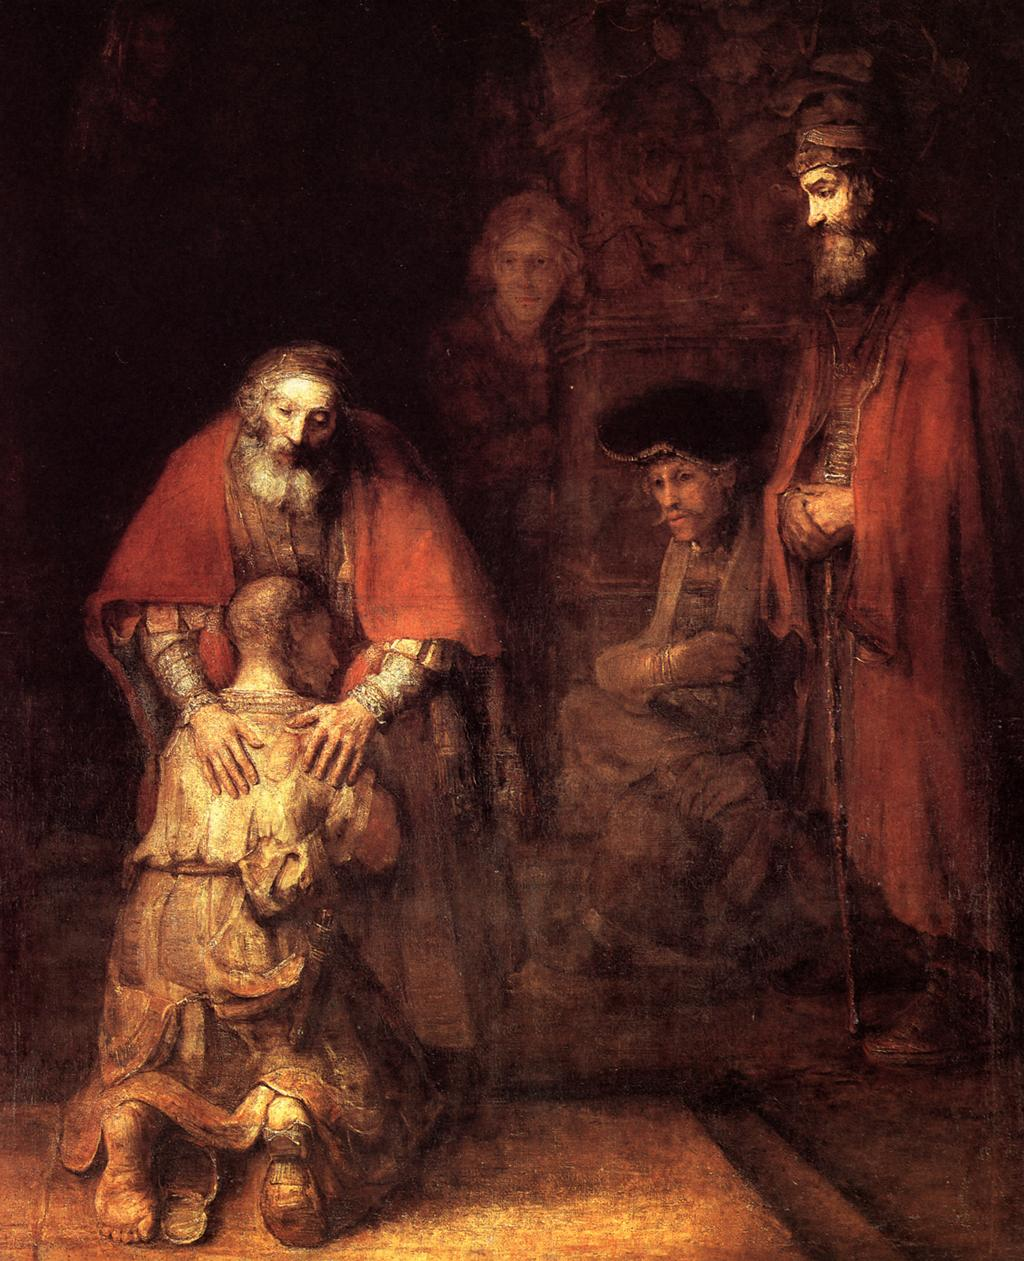 The Return of the Prodigal Son, Rembrandt, 1669